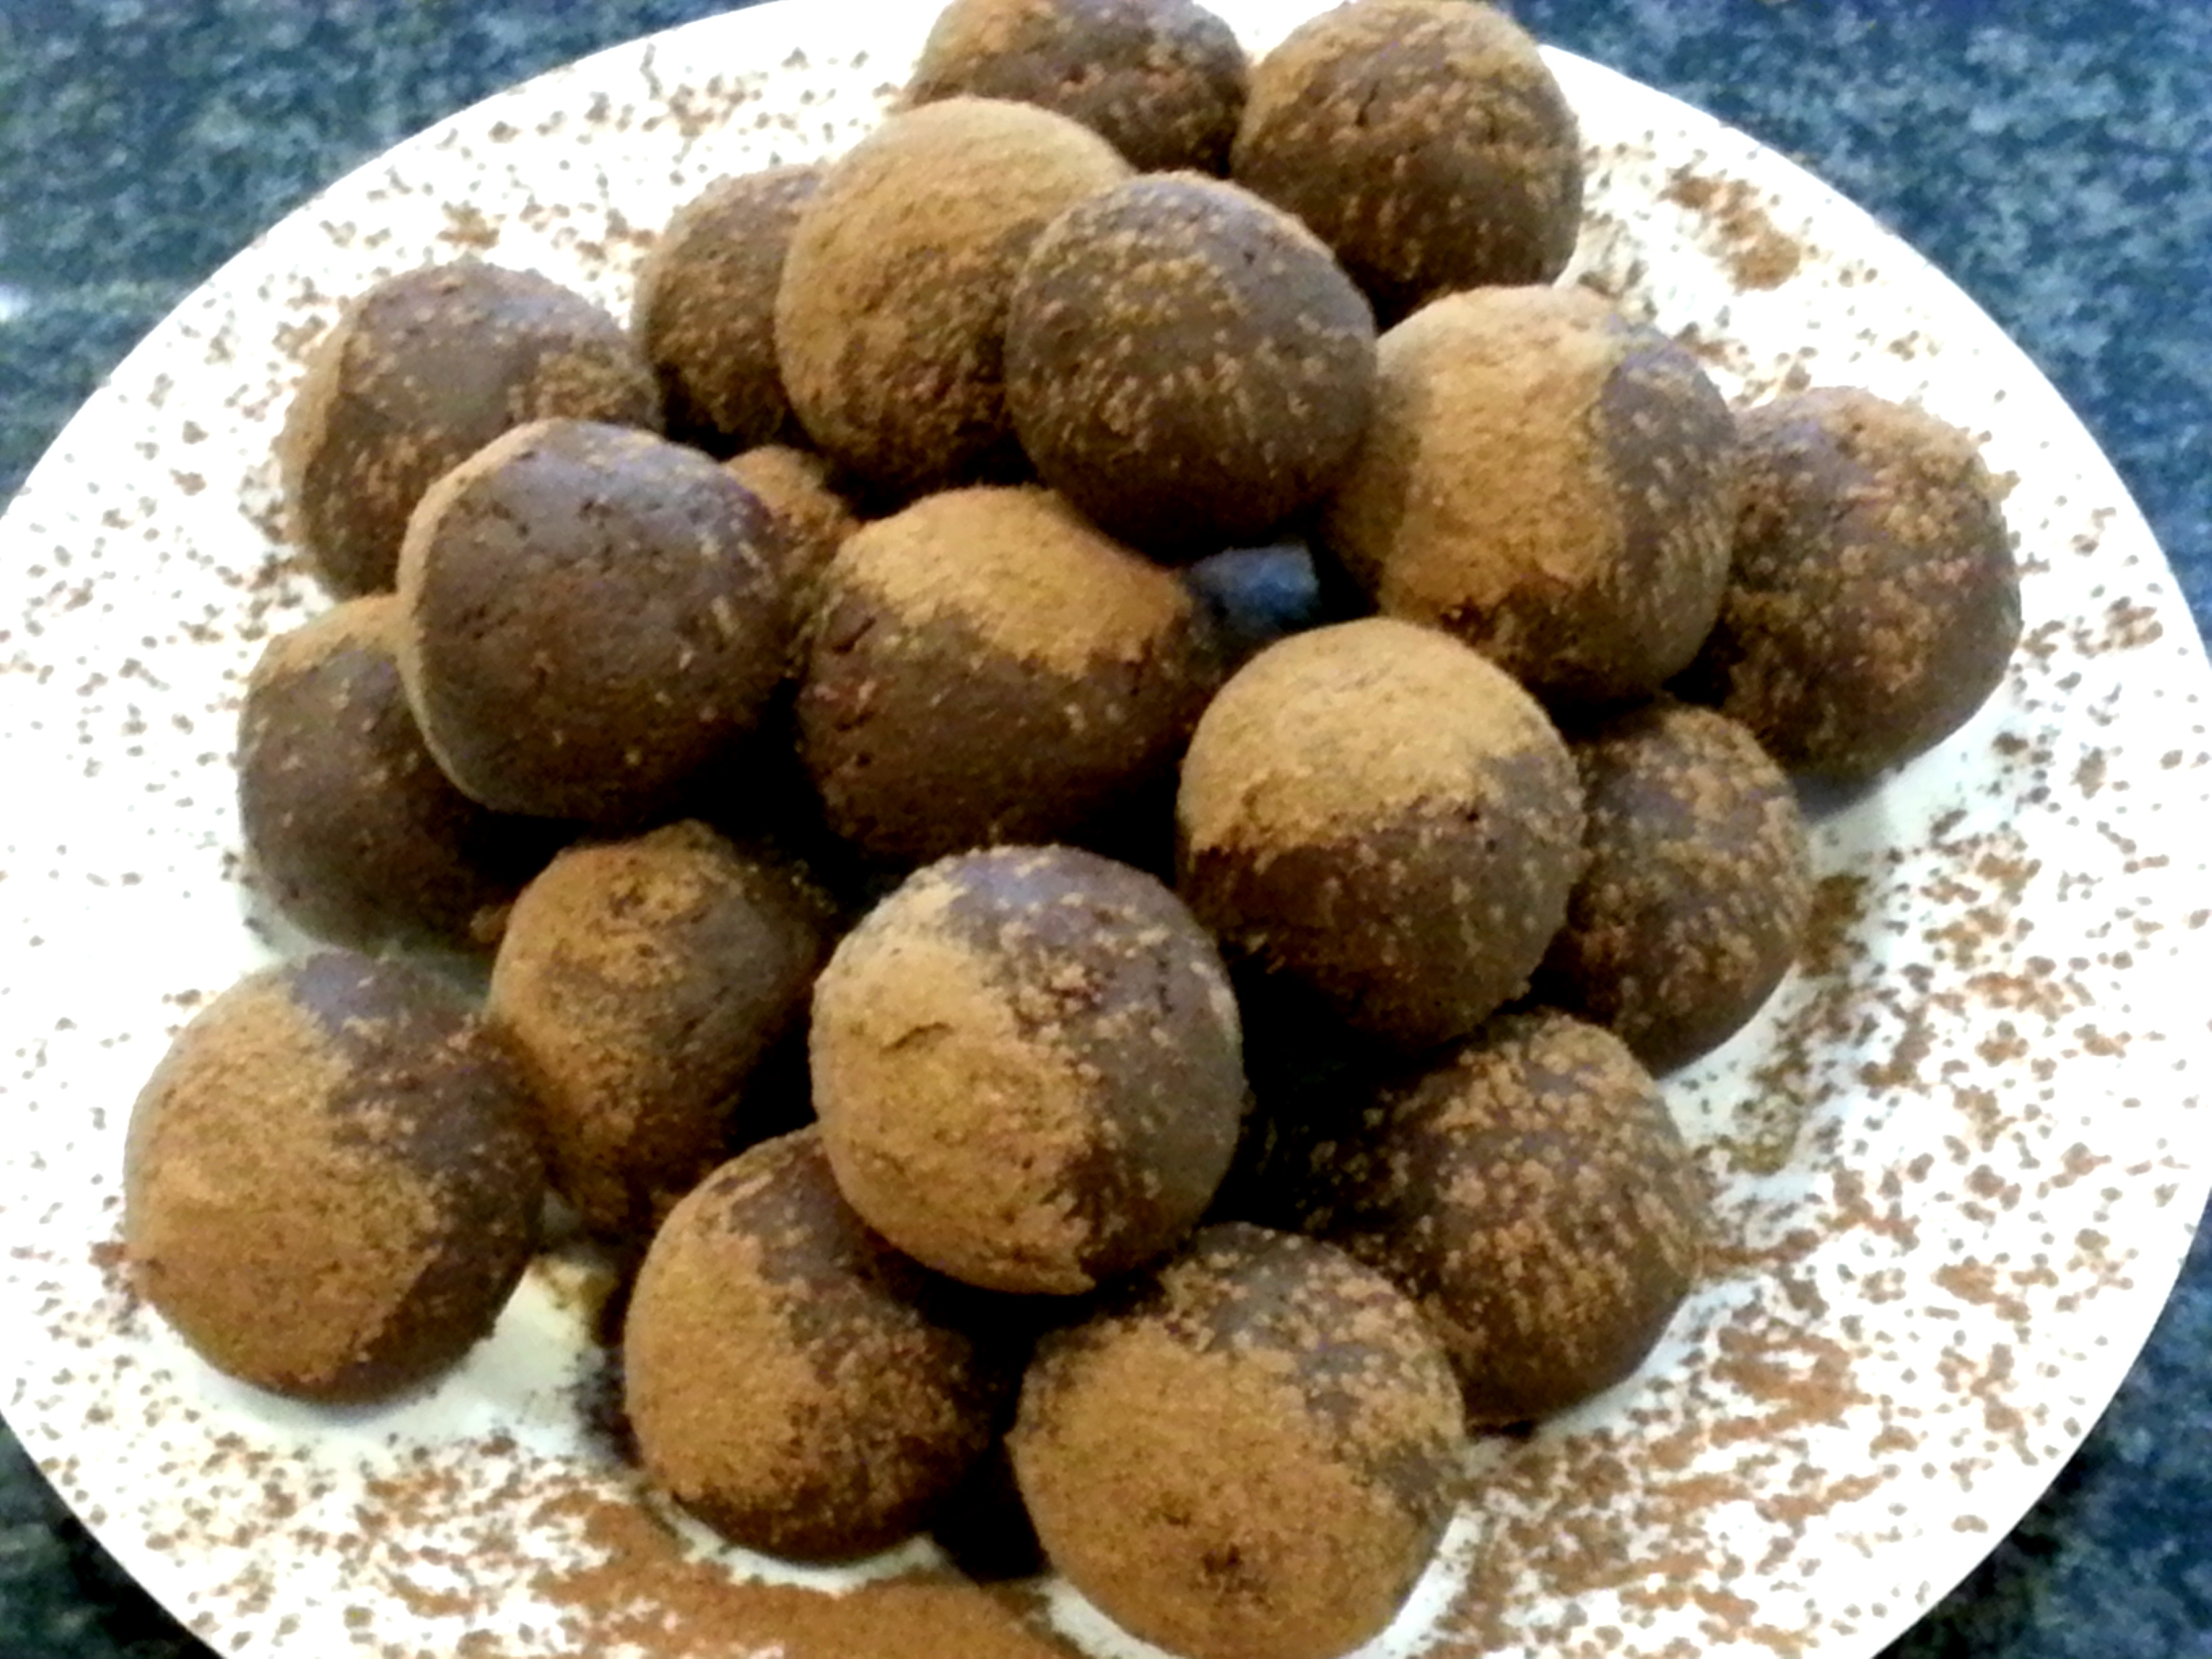 ... .com – Professional Chef Services – Valentines Day Truffles